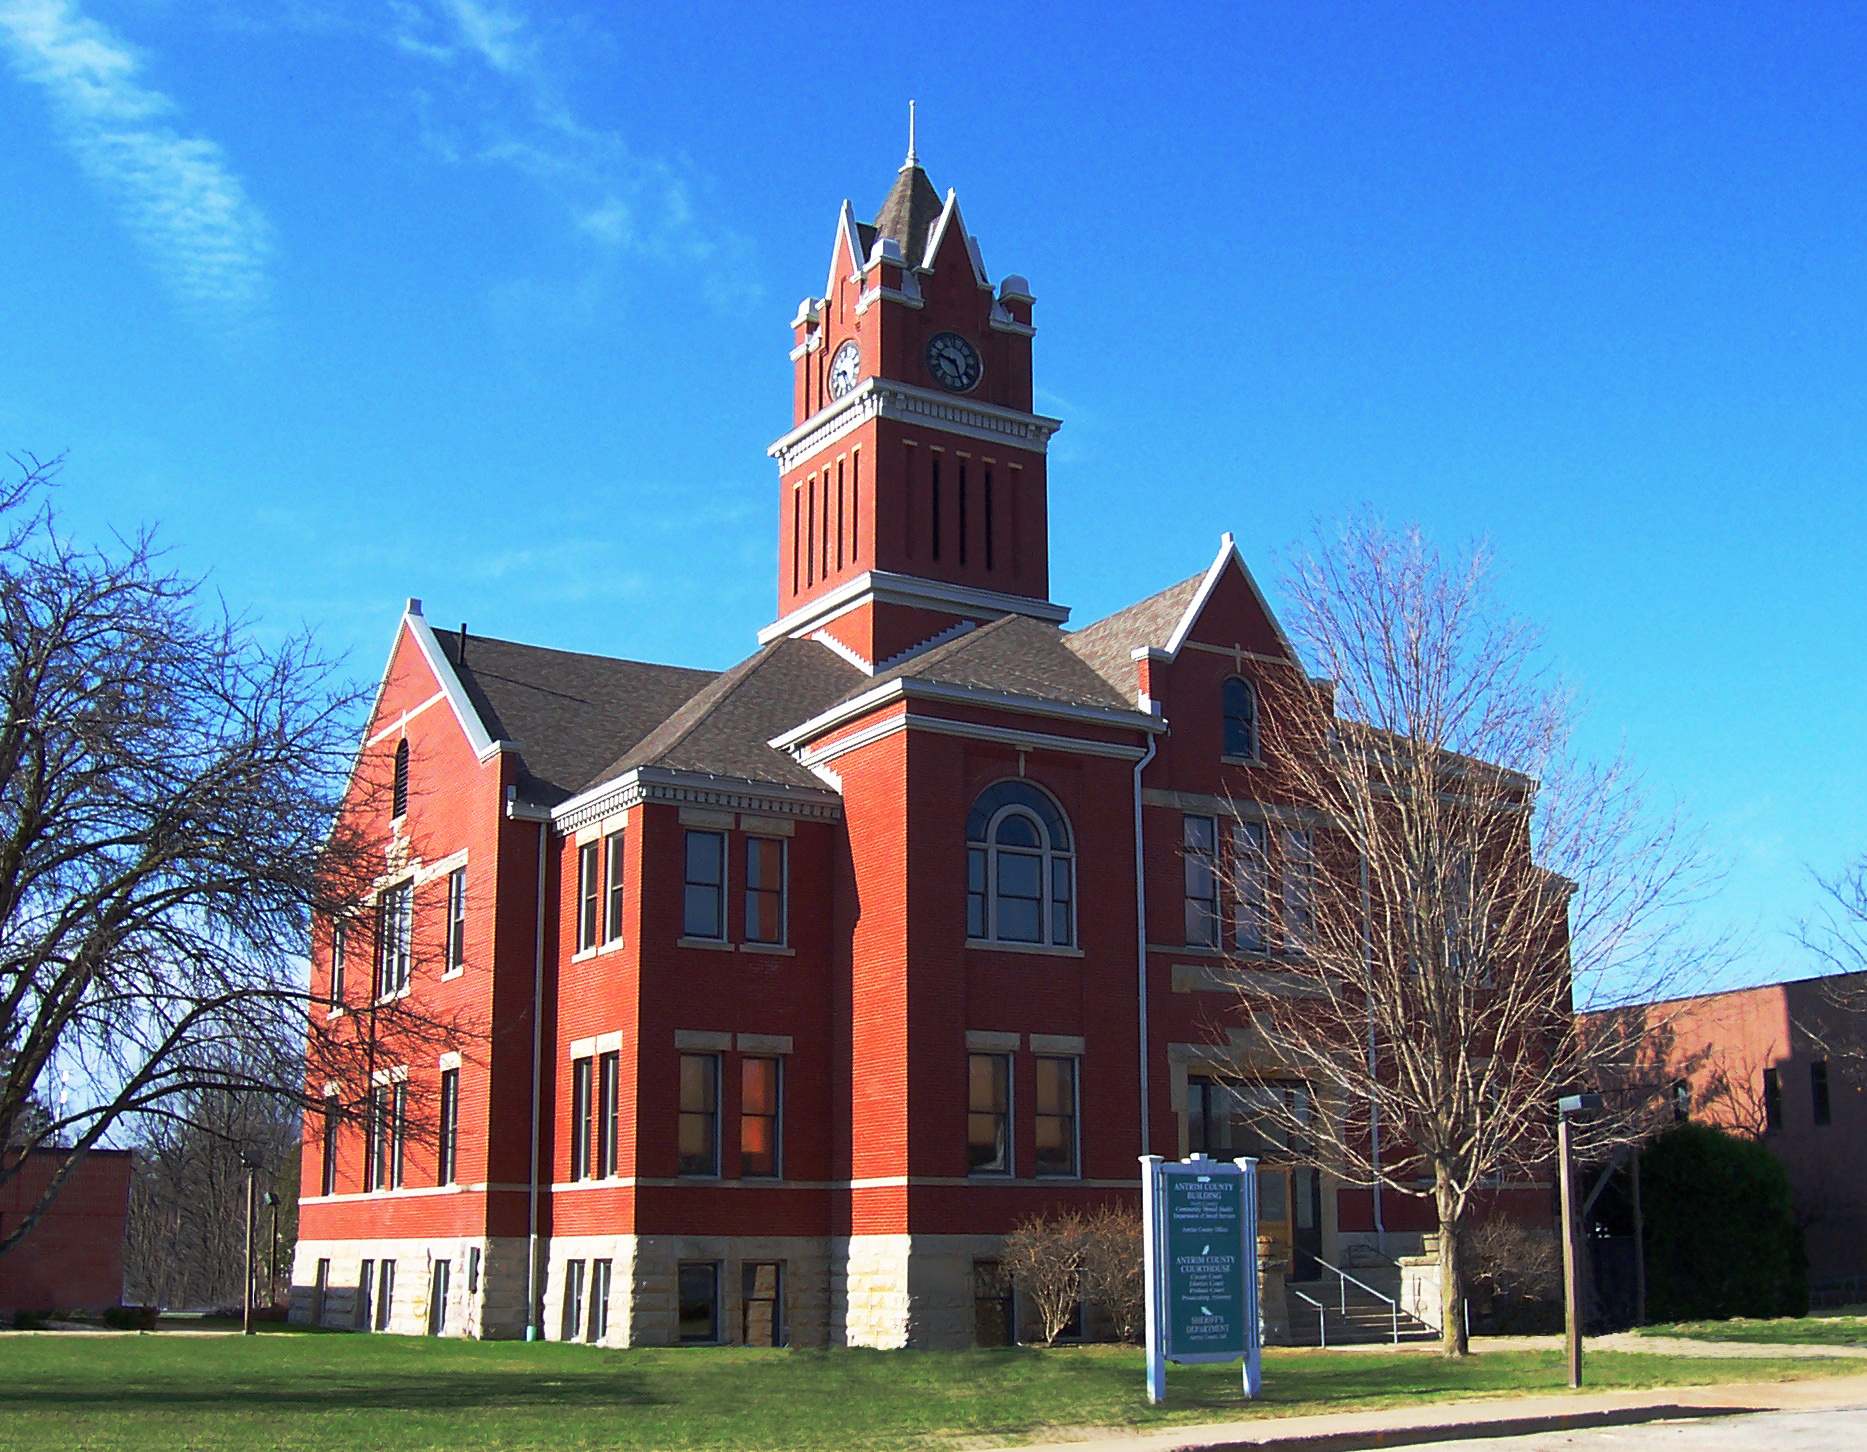 Antrim County Courthouse